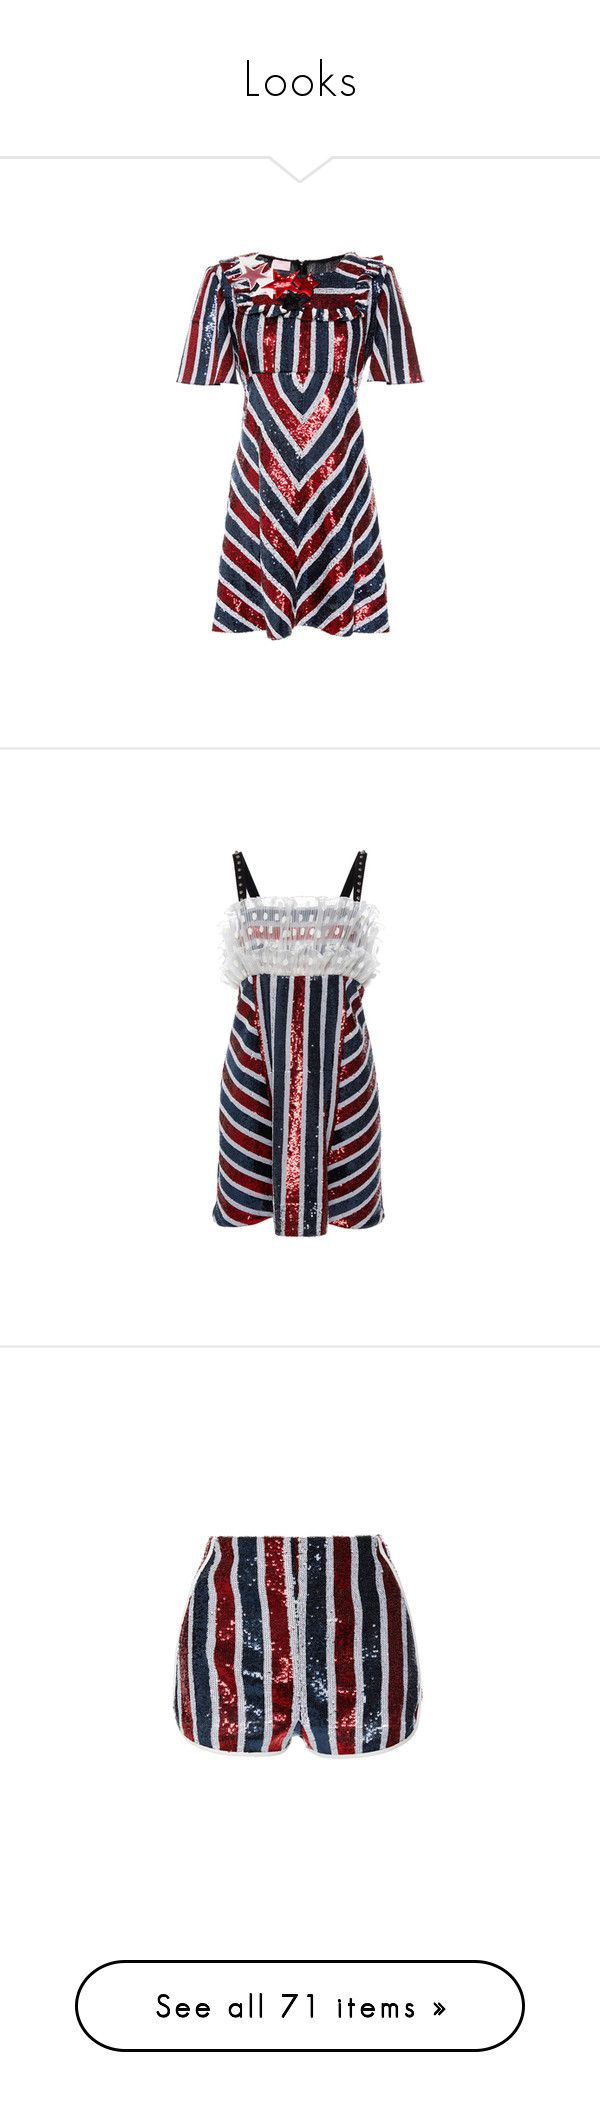 """""""Looks"""" by yaseumin ❤ liked on Polyvore featuring dresses, co-ord, embelished dress, embellished dresses, short sleeve sequin dress, striped mini dress, flare dress, no sleeve dress, frill dress and striped sequin dress"""